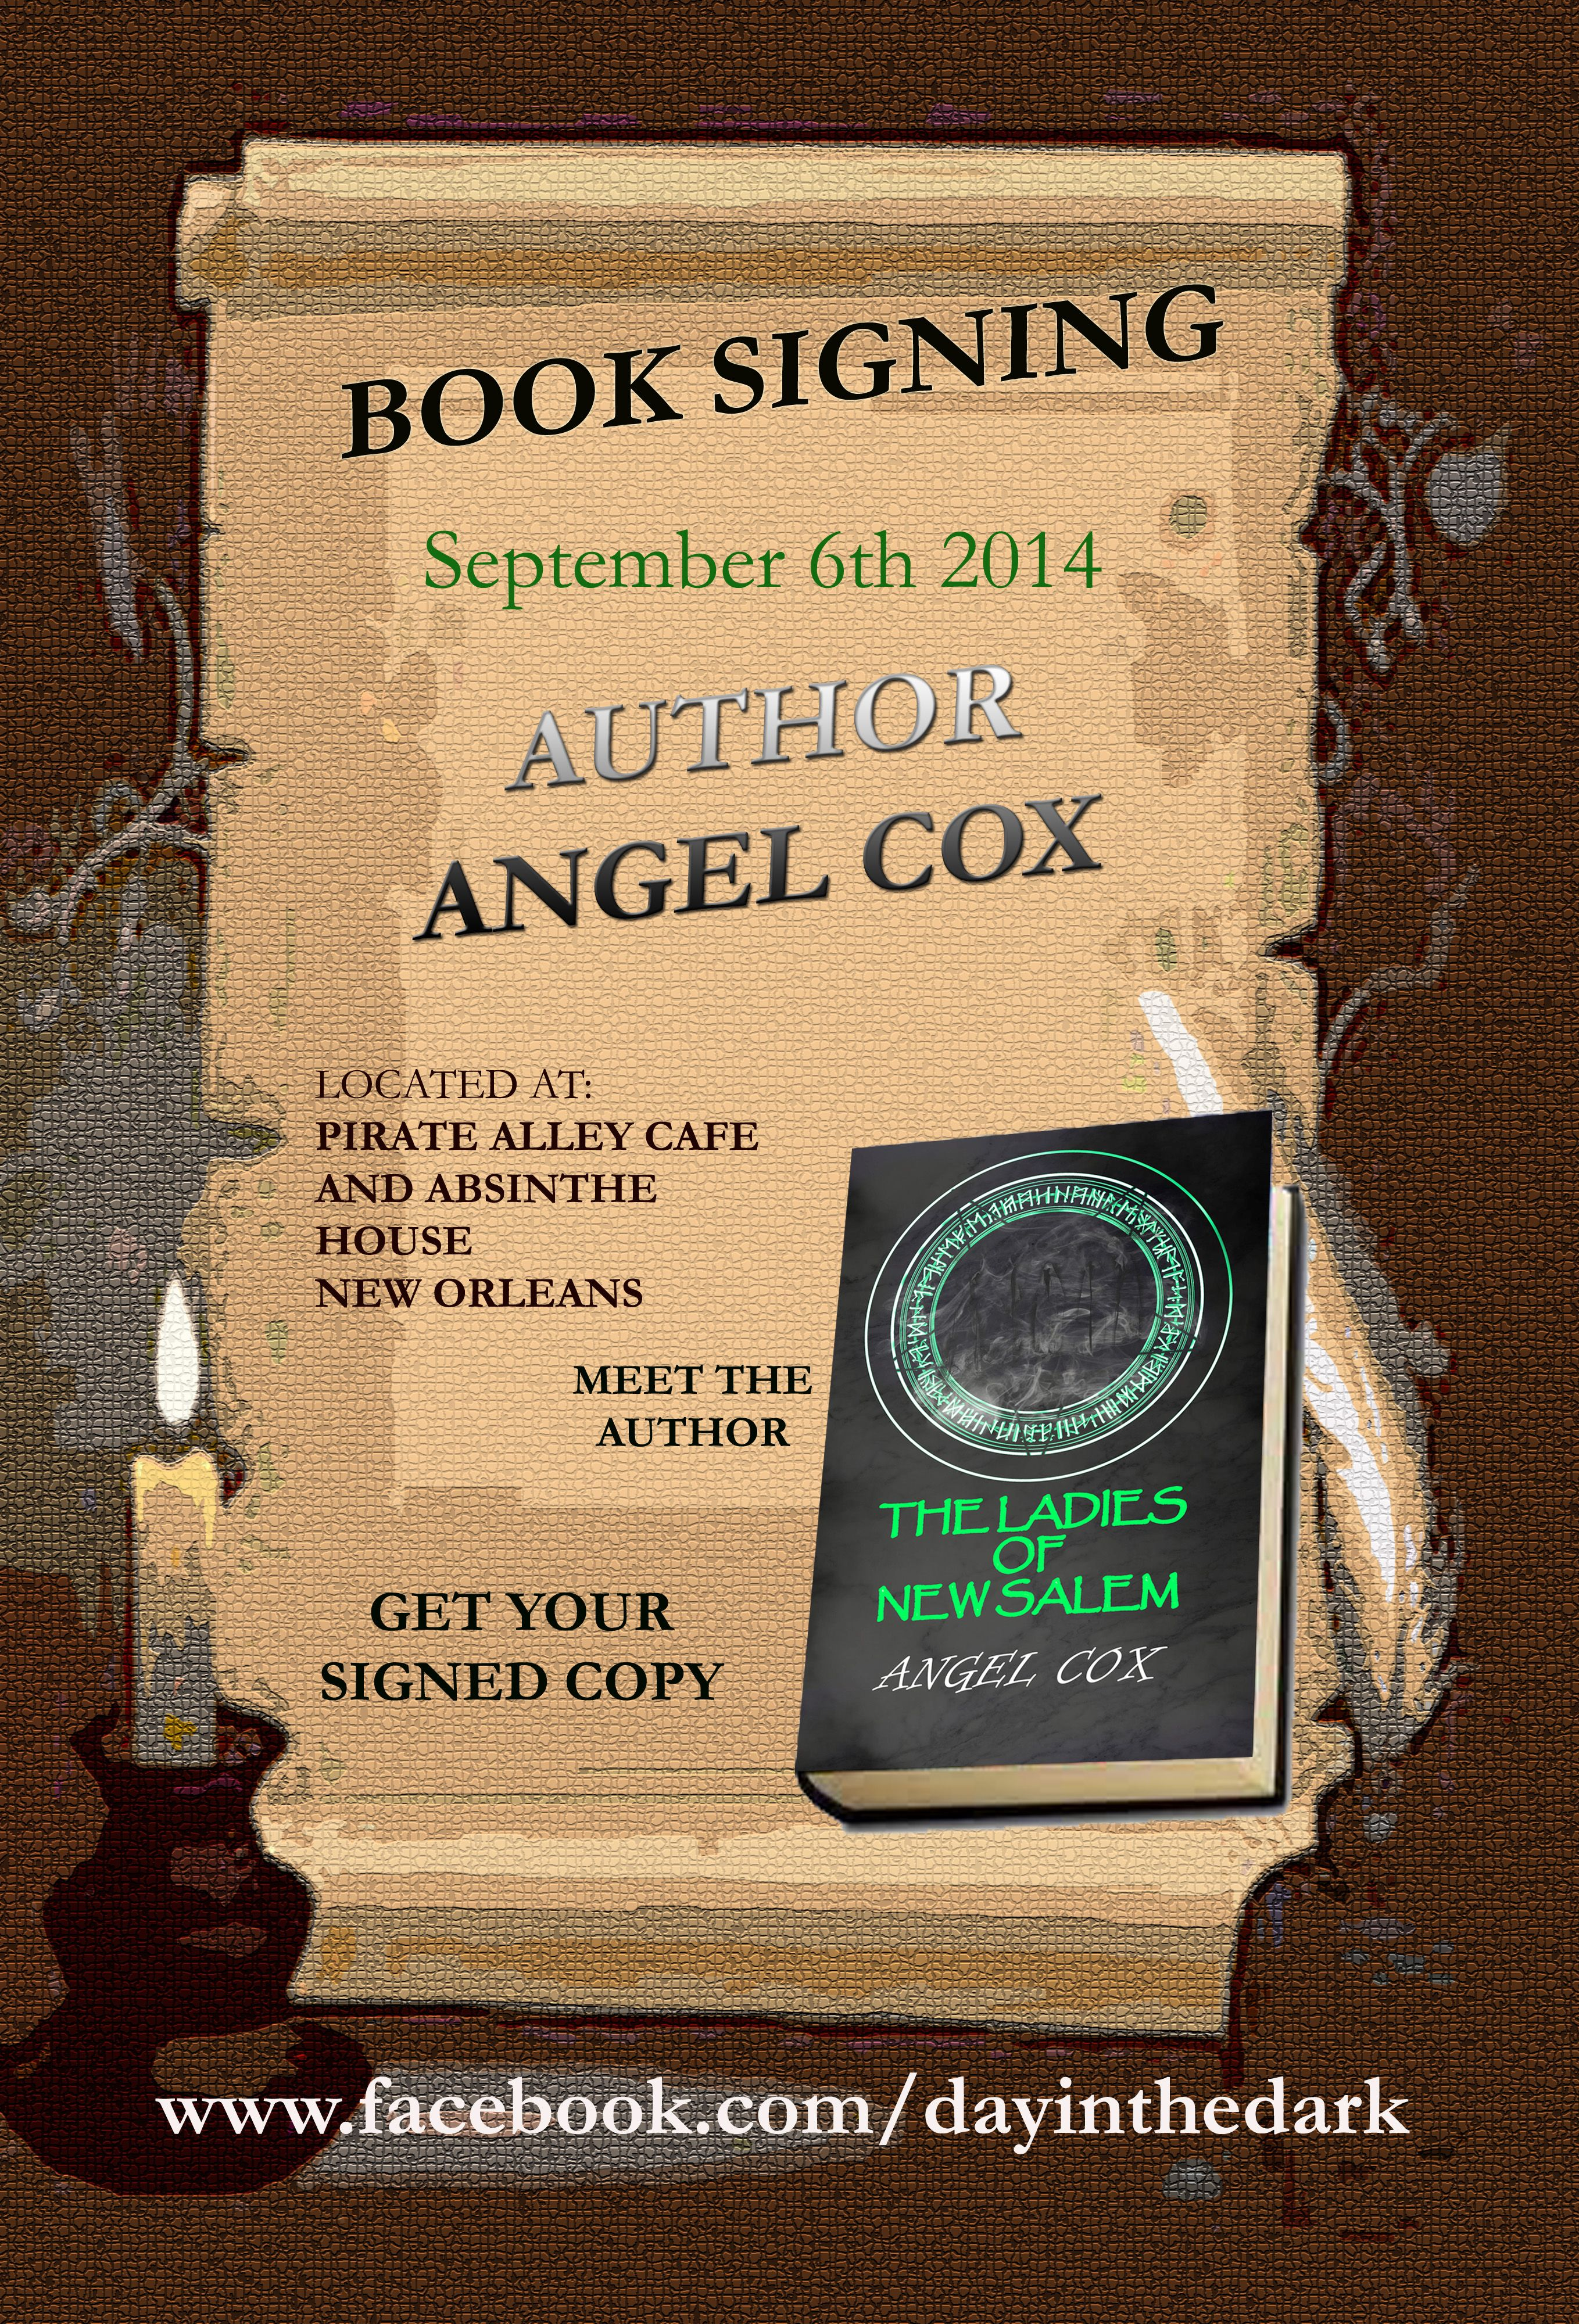 How To Get A Signed Copy Of A Book